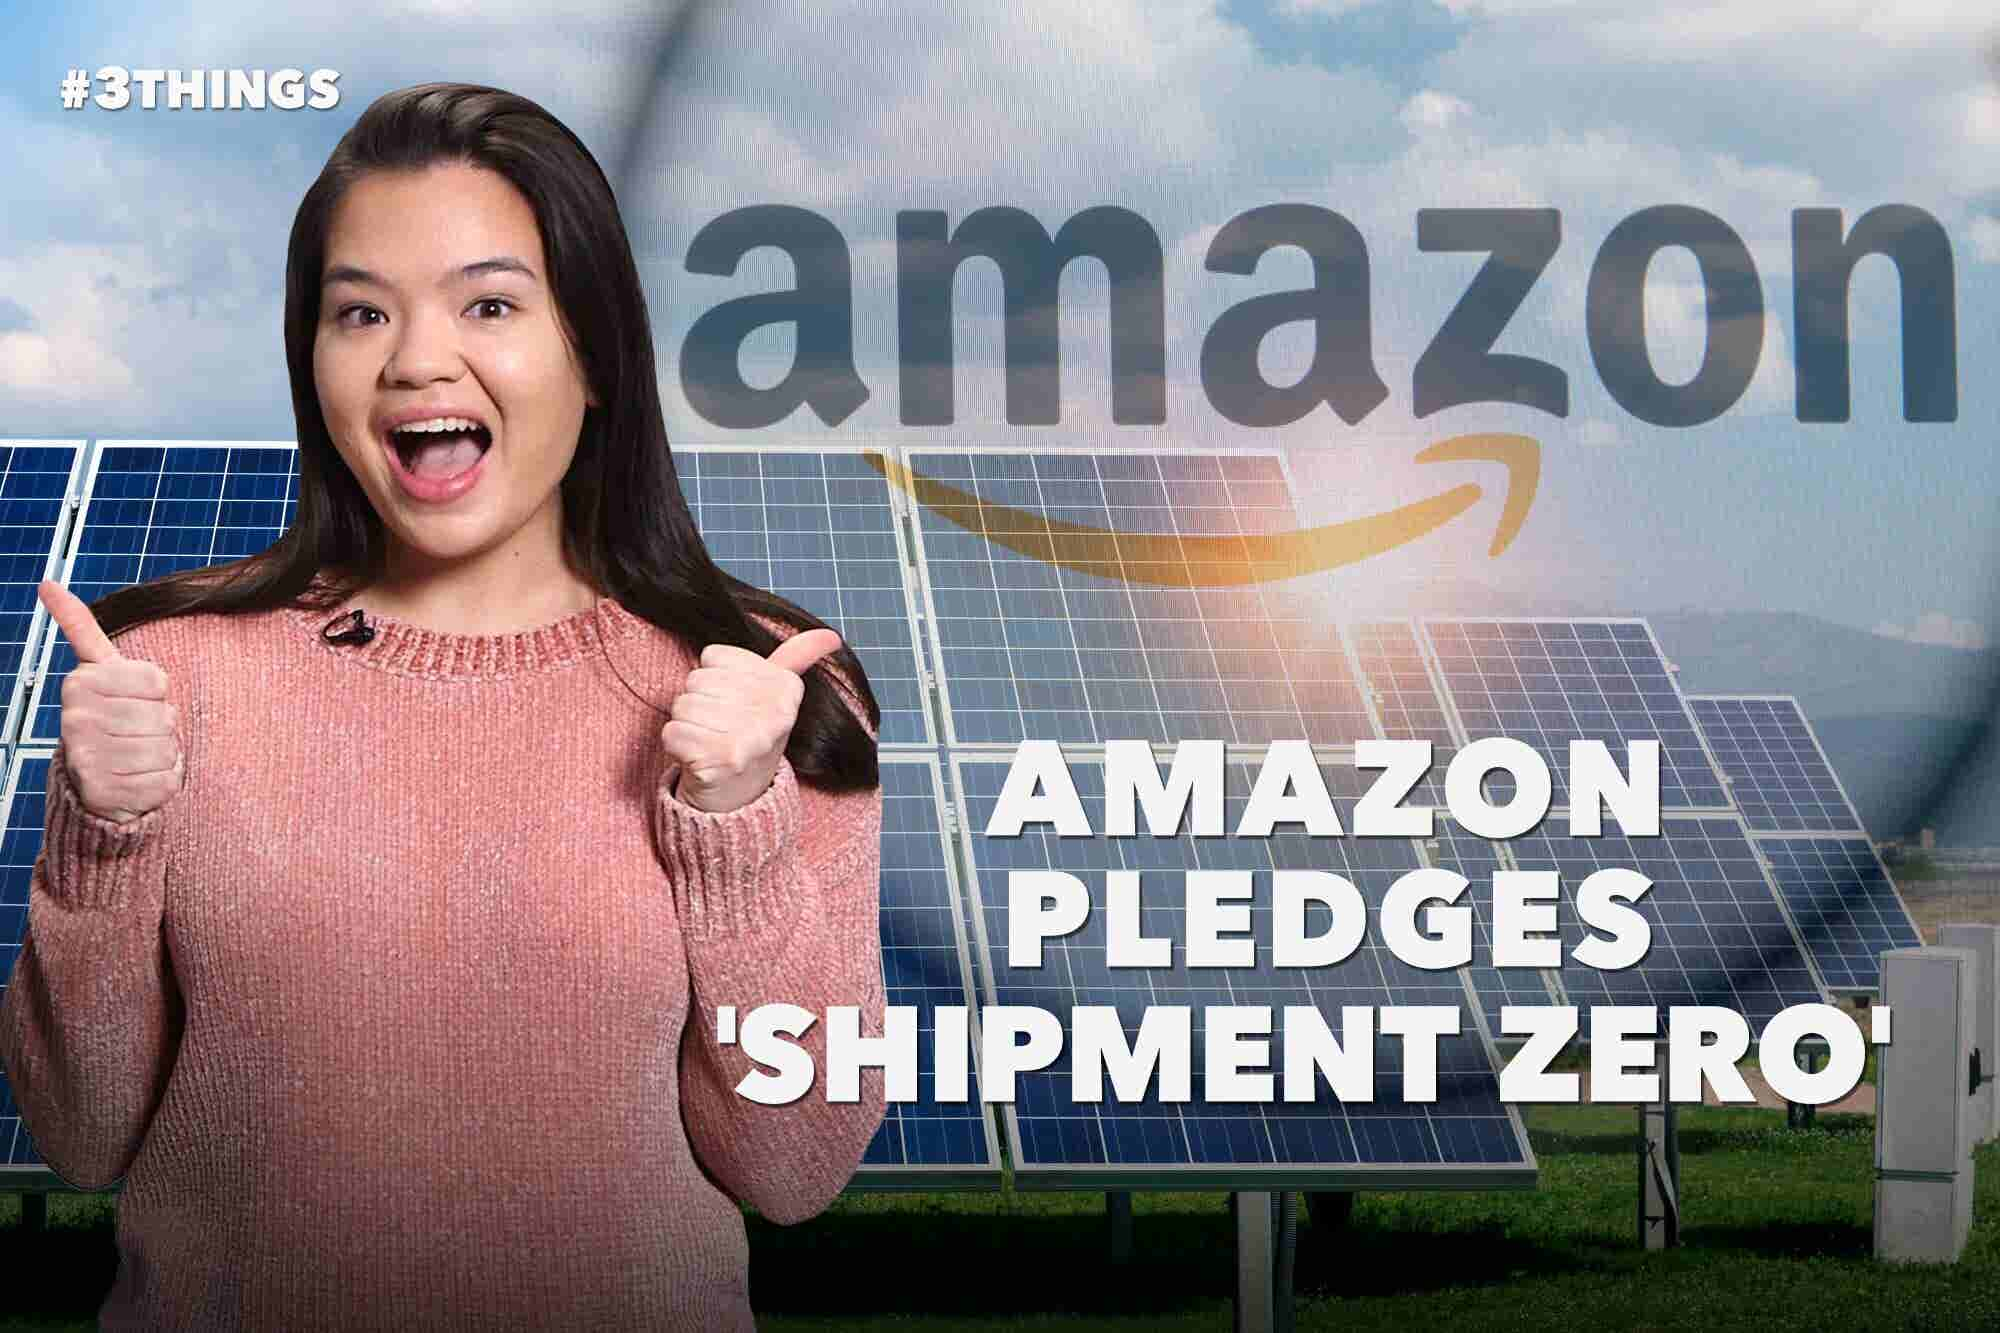 Amazon Pledges 'Shipment Zero,' Time's Up CEO Resigns, and Oscars Swag Bags Include THC (60-Second Video)